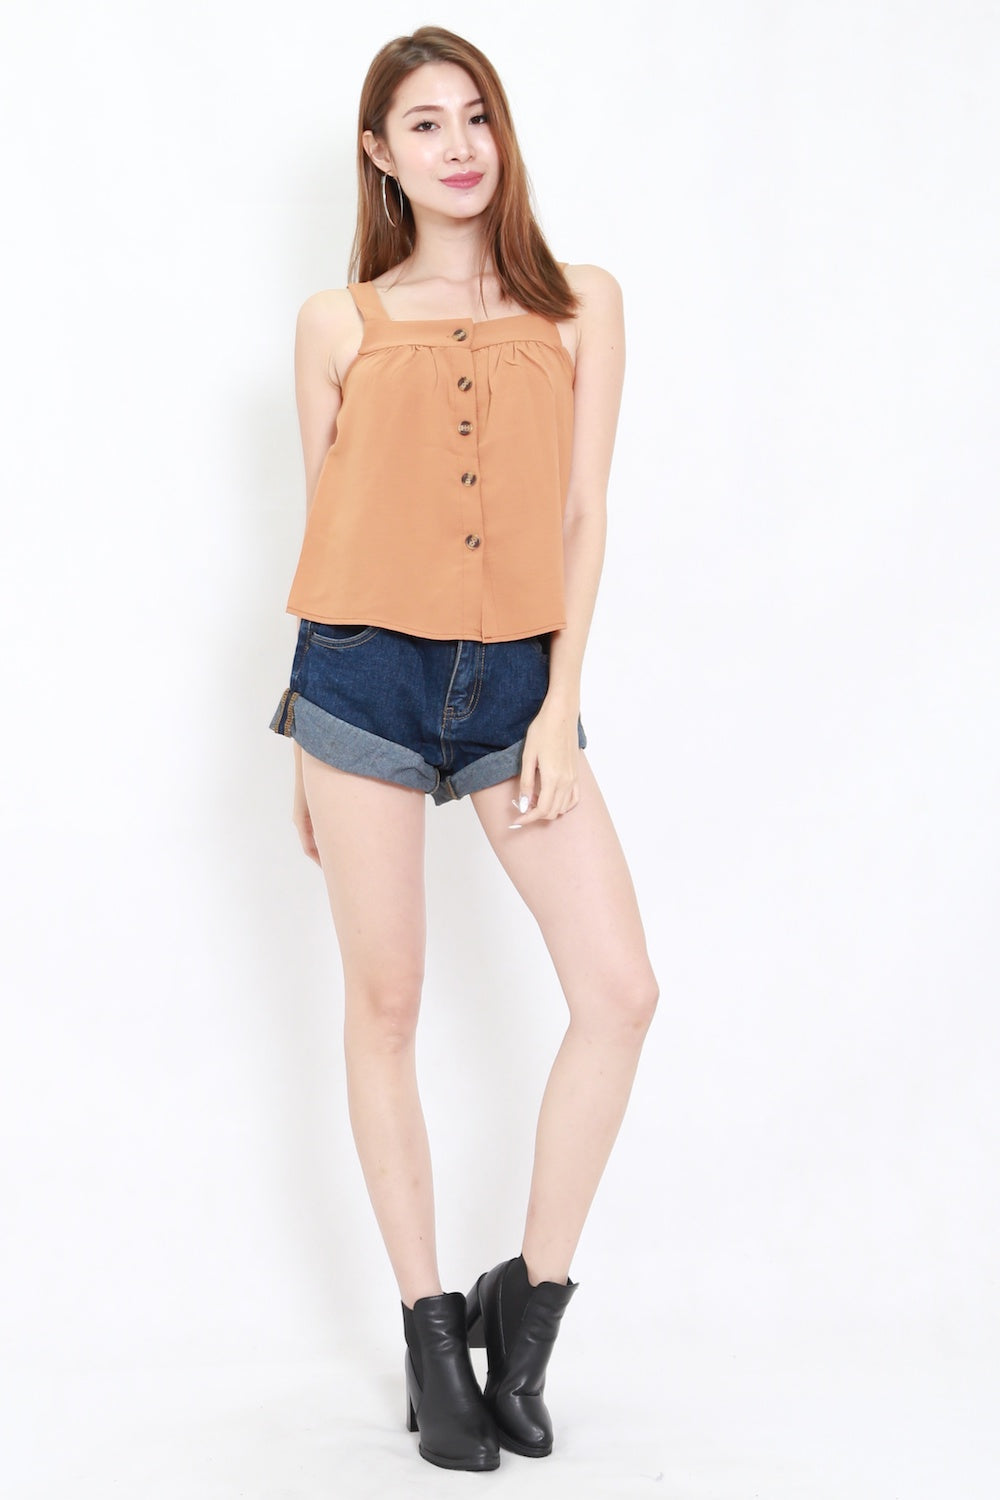 Vessie Buttons Top (Camel)